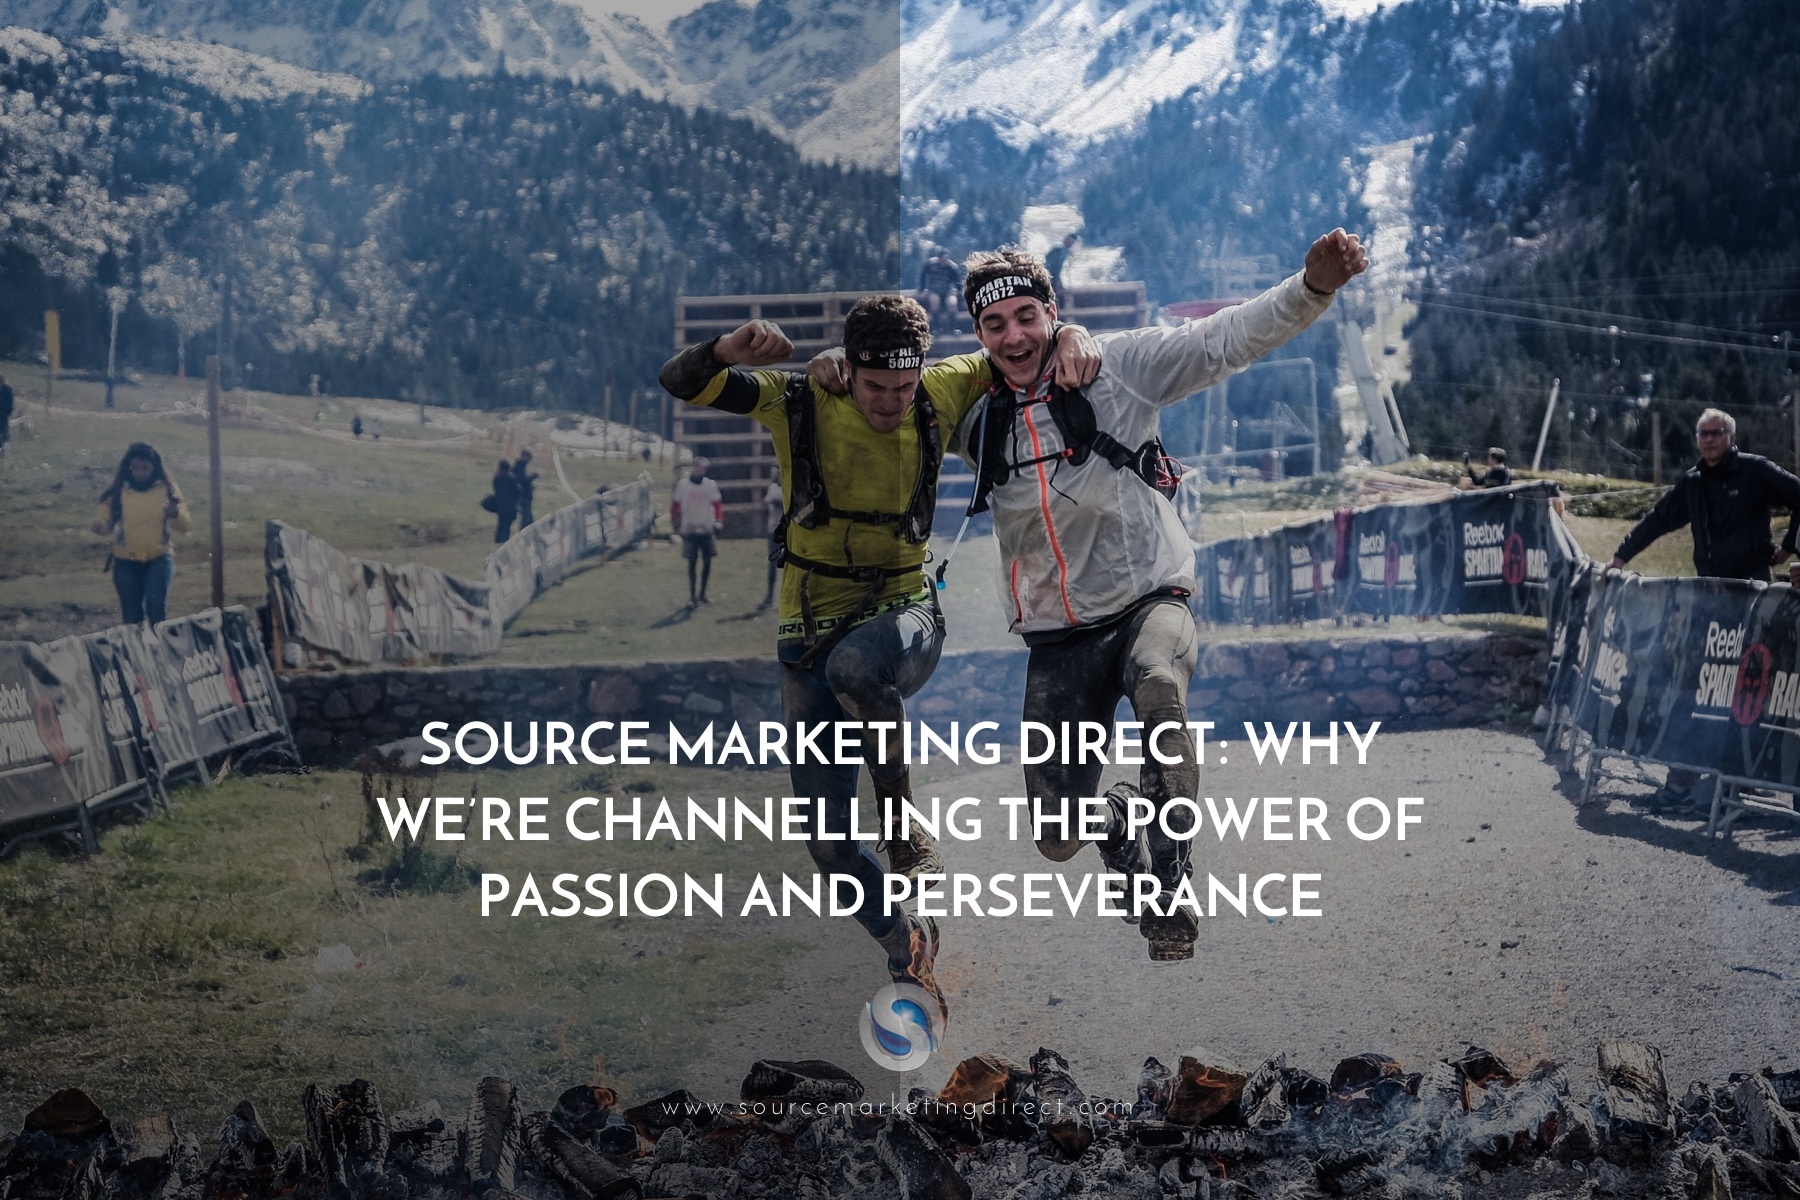 Source Marketing Direct: Why we're channelling the power of passion and perseverance